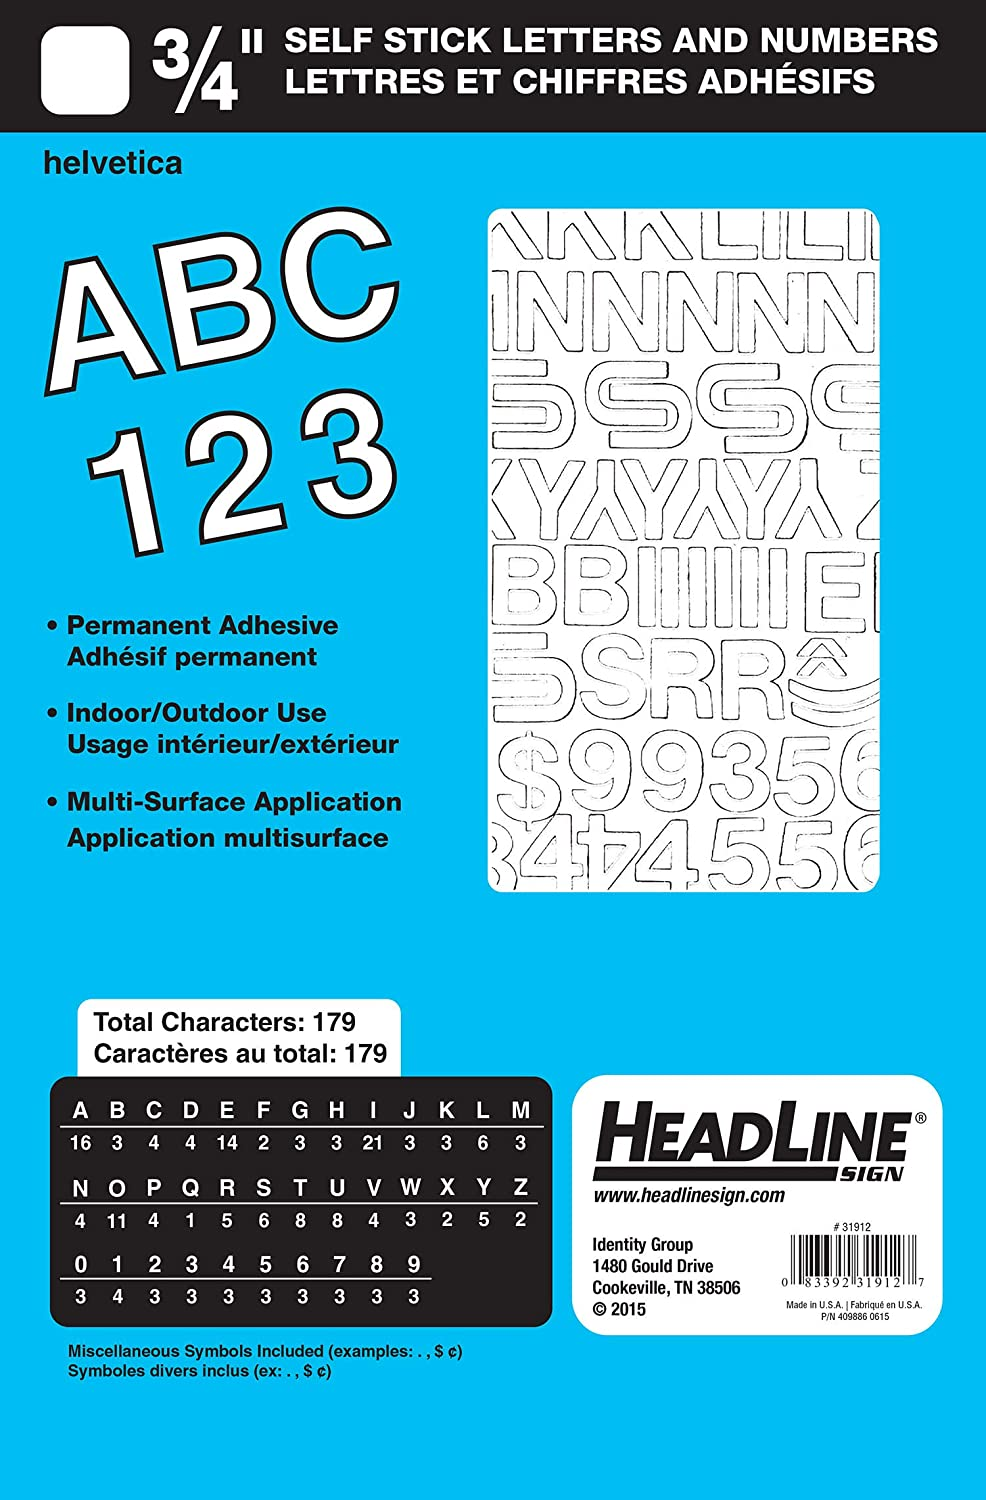 White Headline Sign 31912 Stick-On Vinyl Letters and Numbers 3//4-Inch